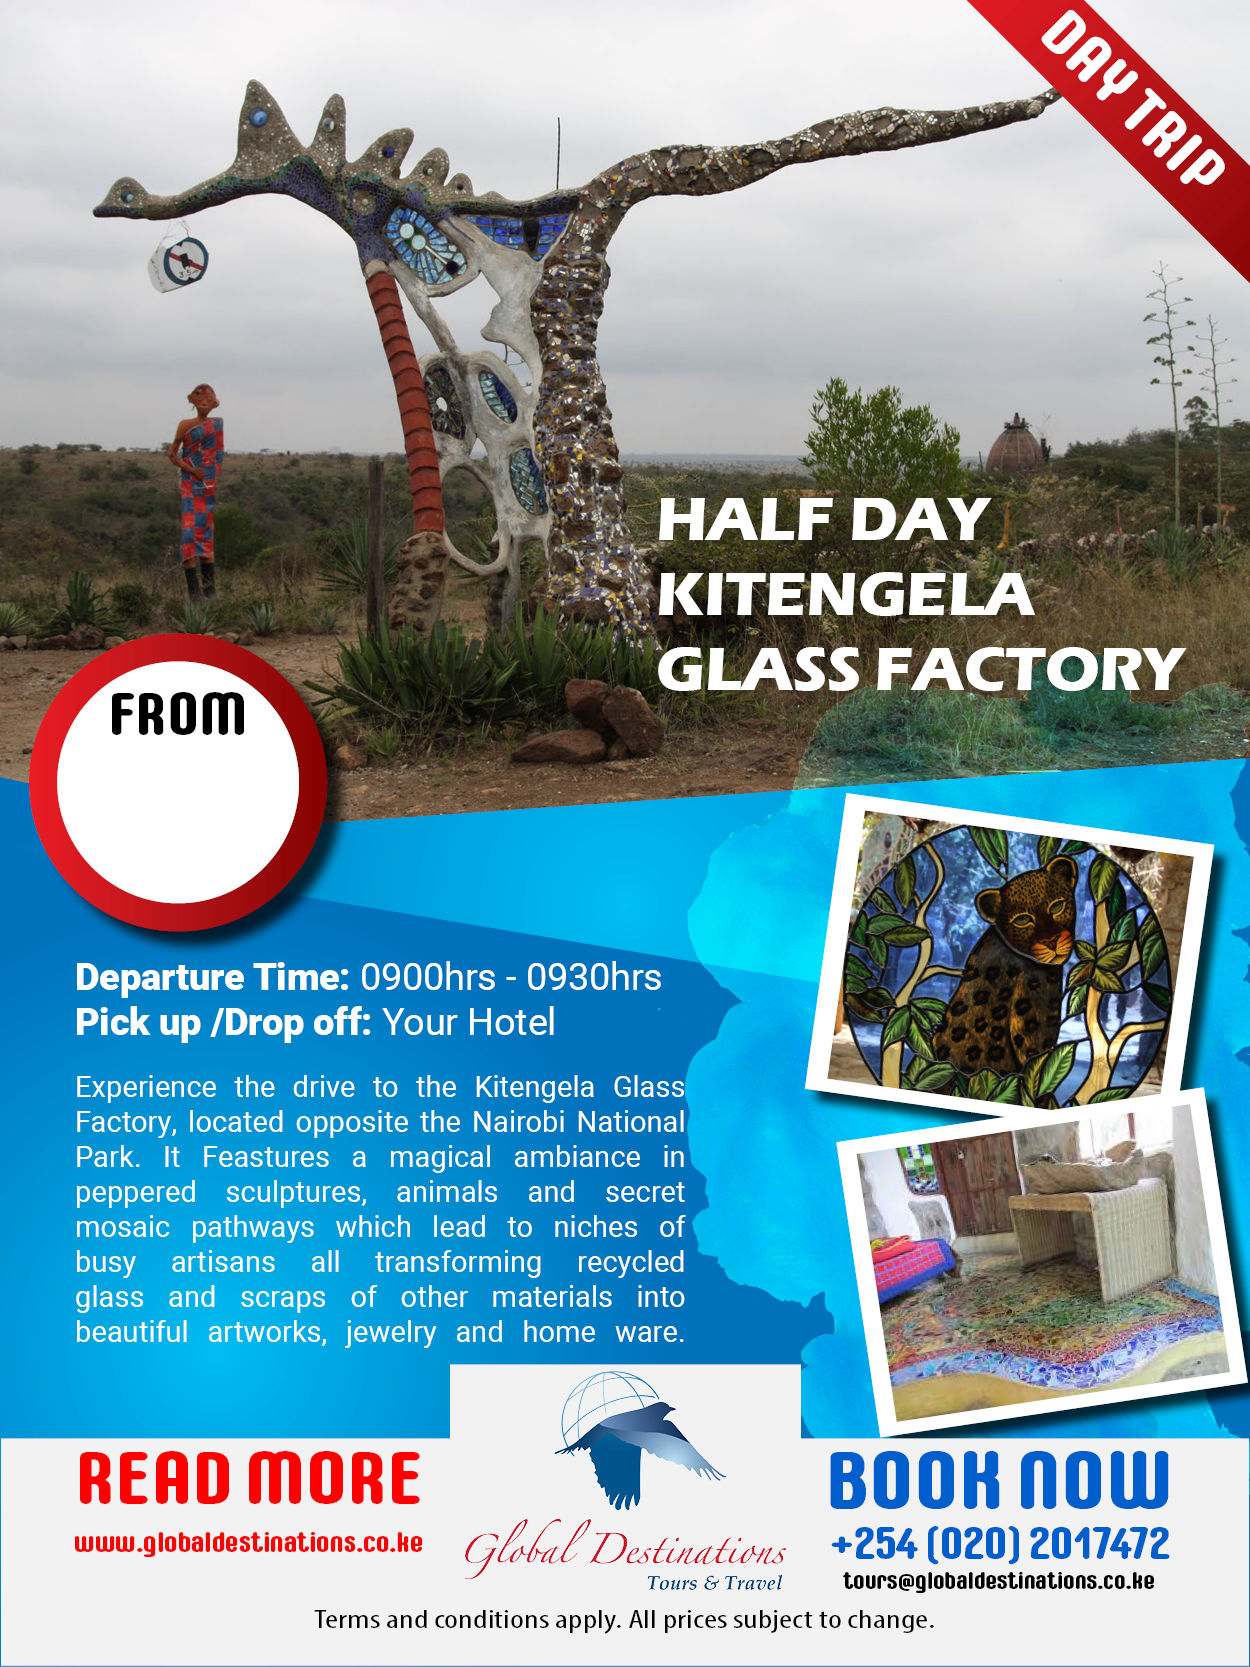 Half Day Kitengela Glass Factory Kajiado